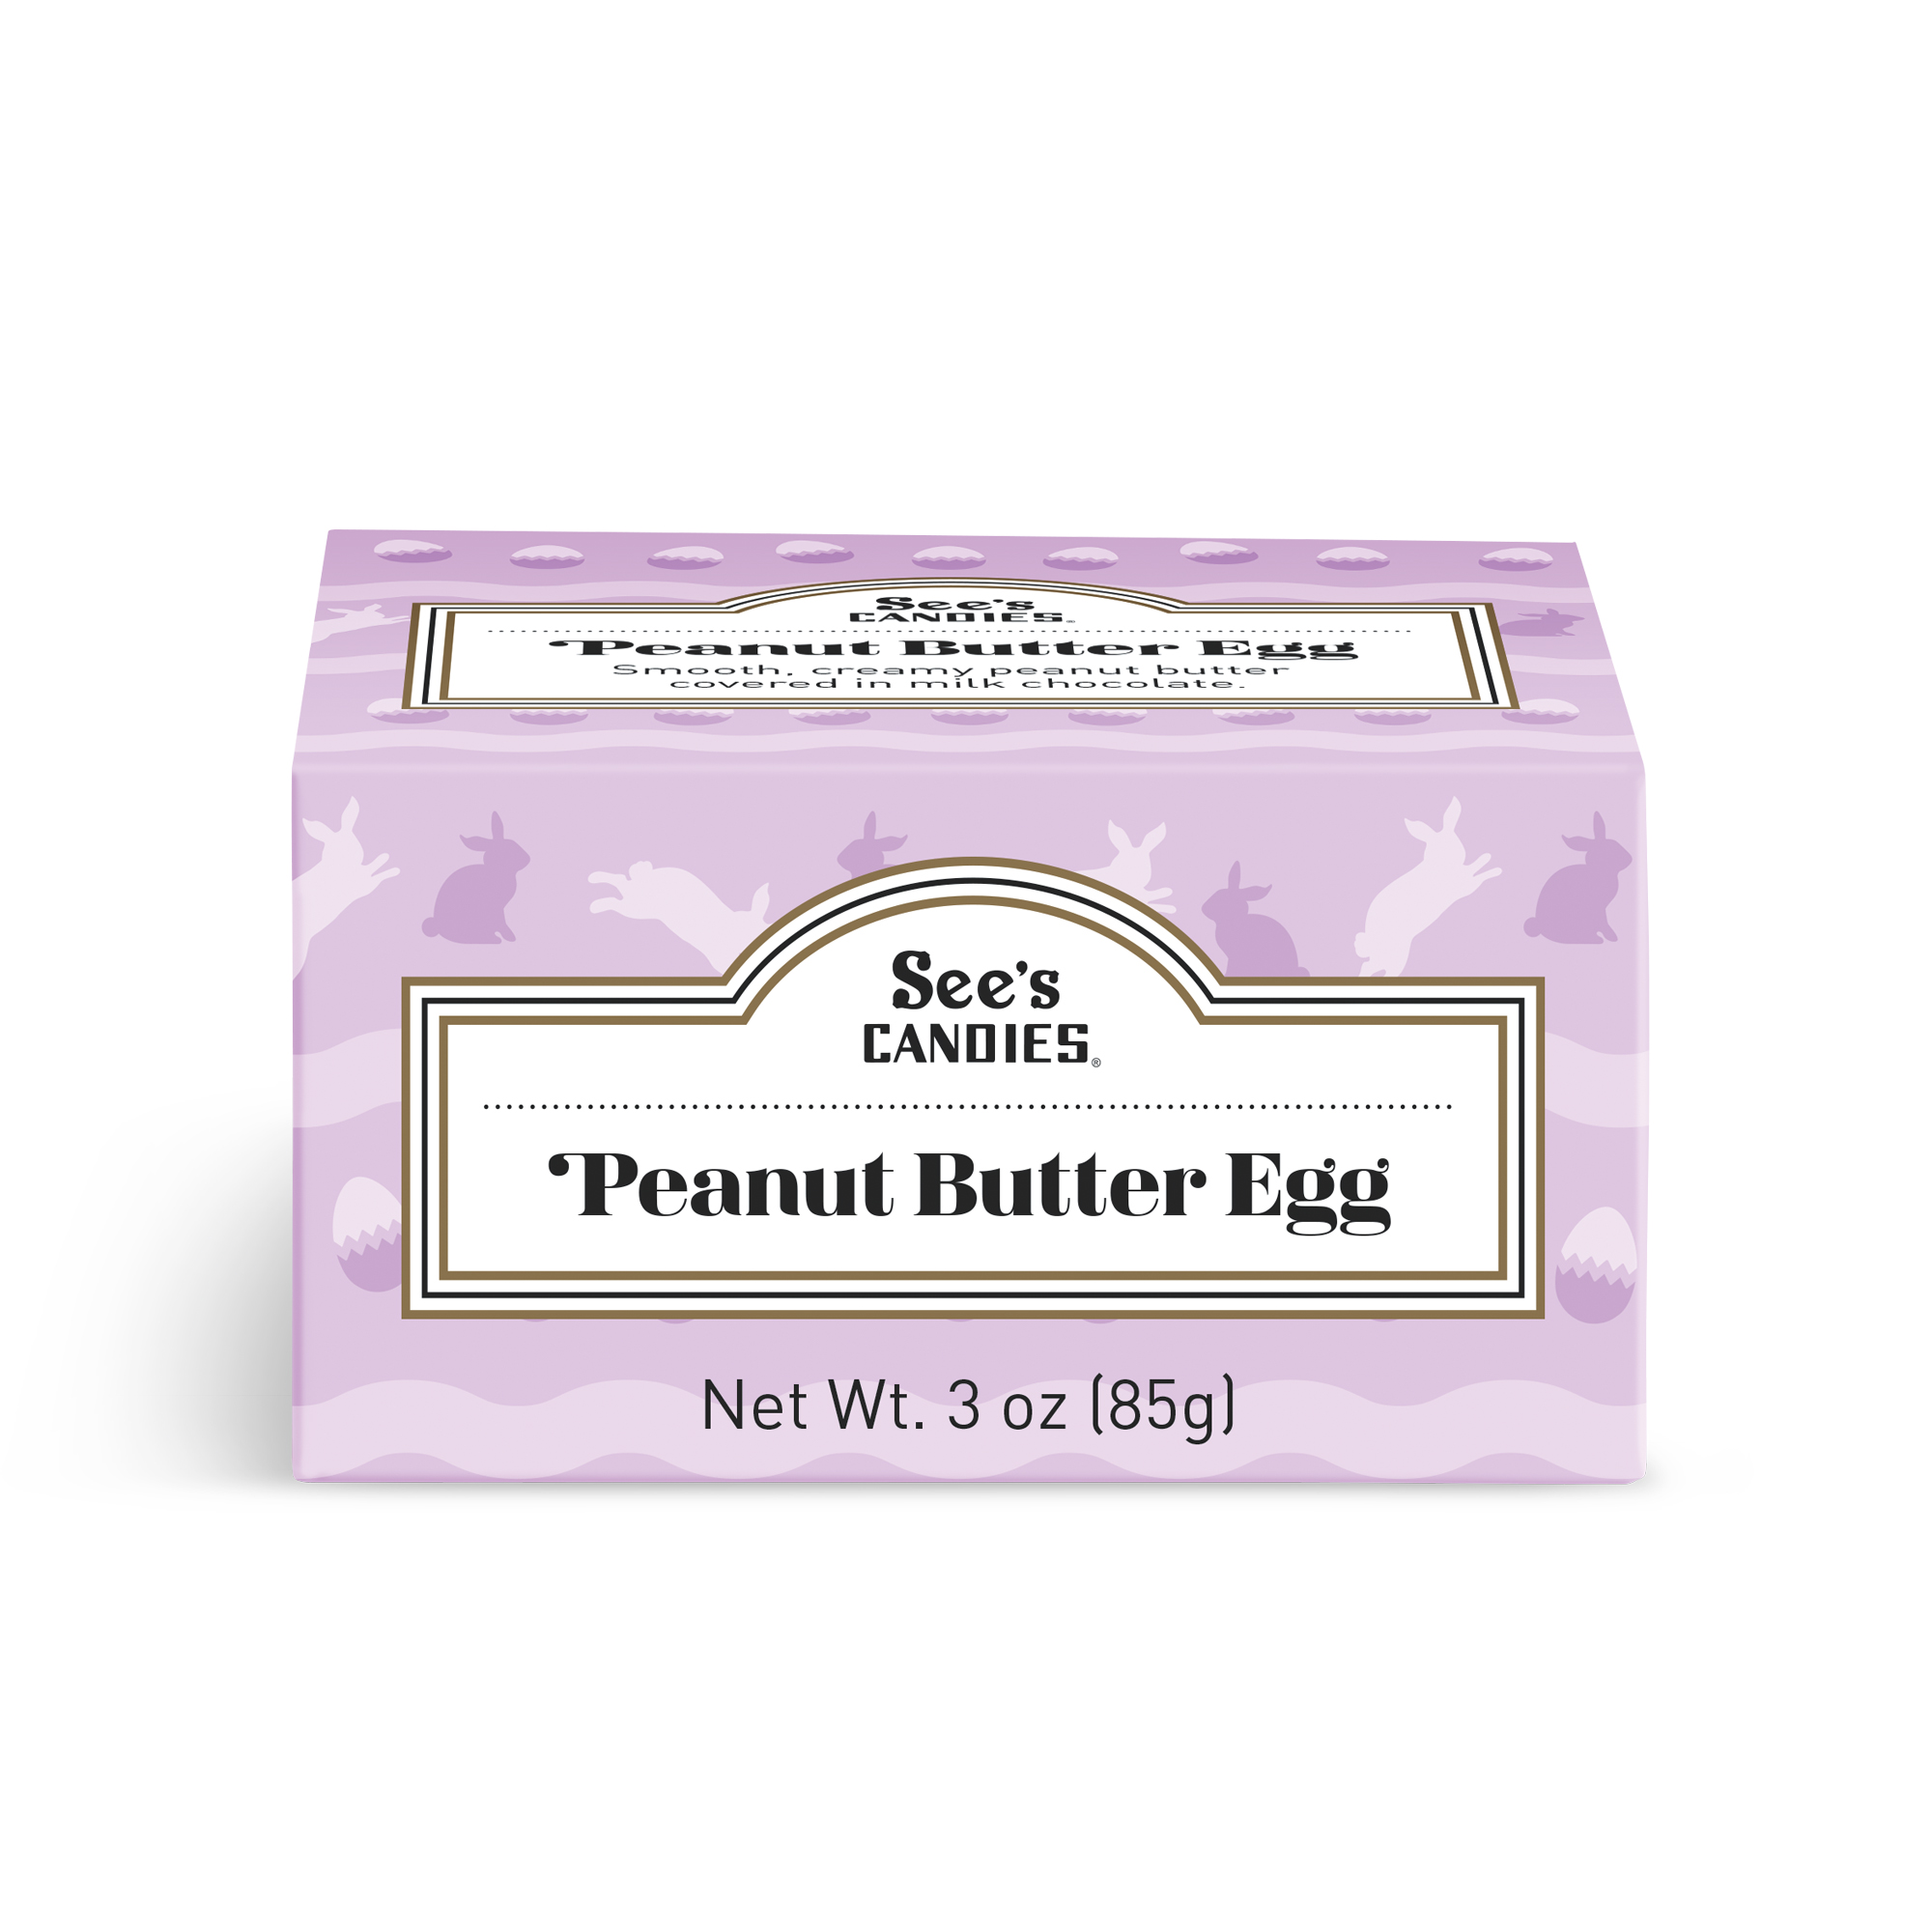 View of Peanut Butter Egg 2